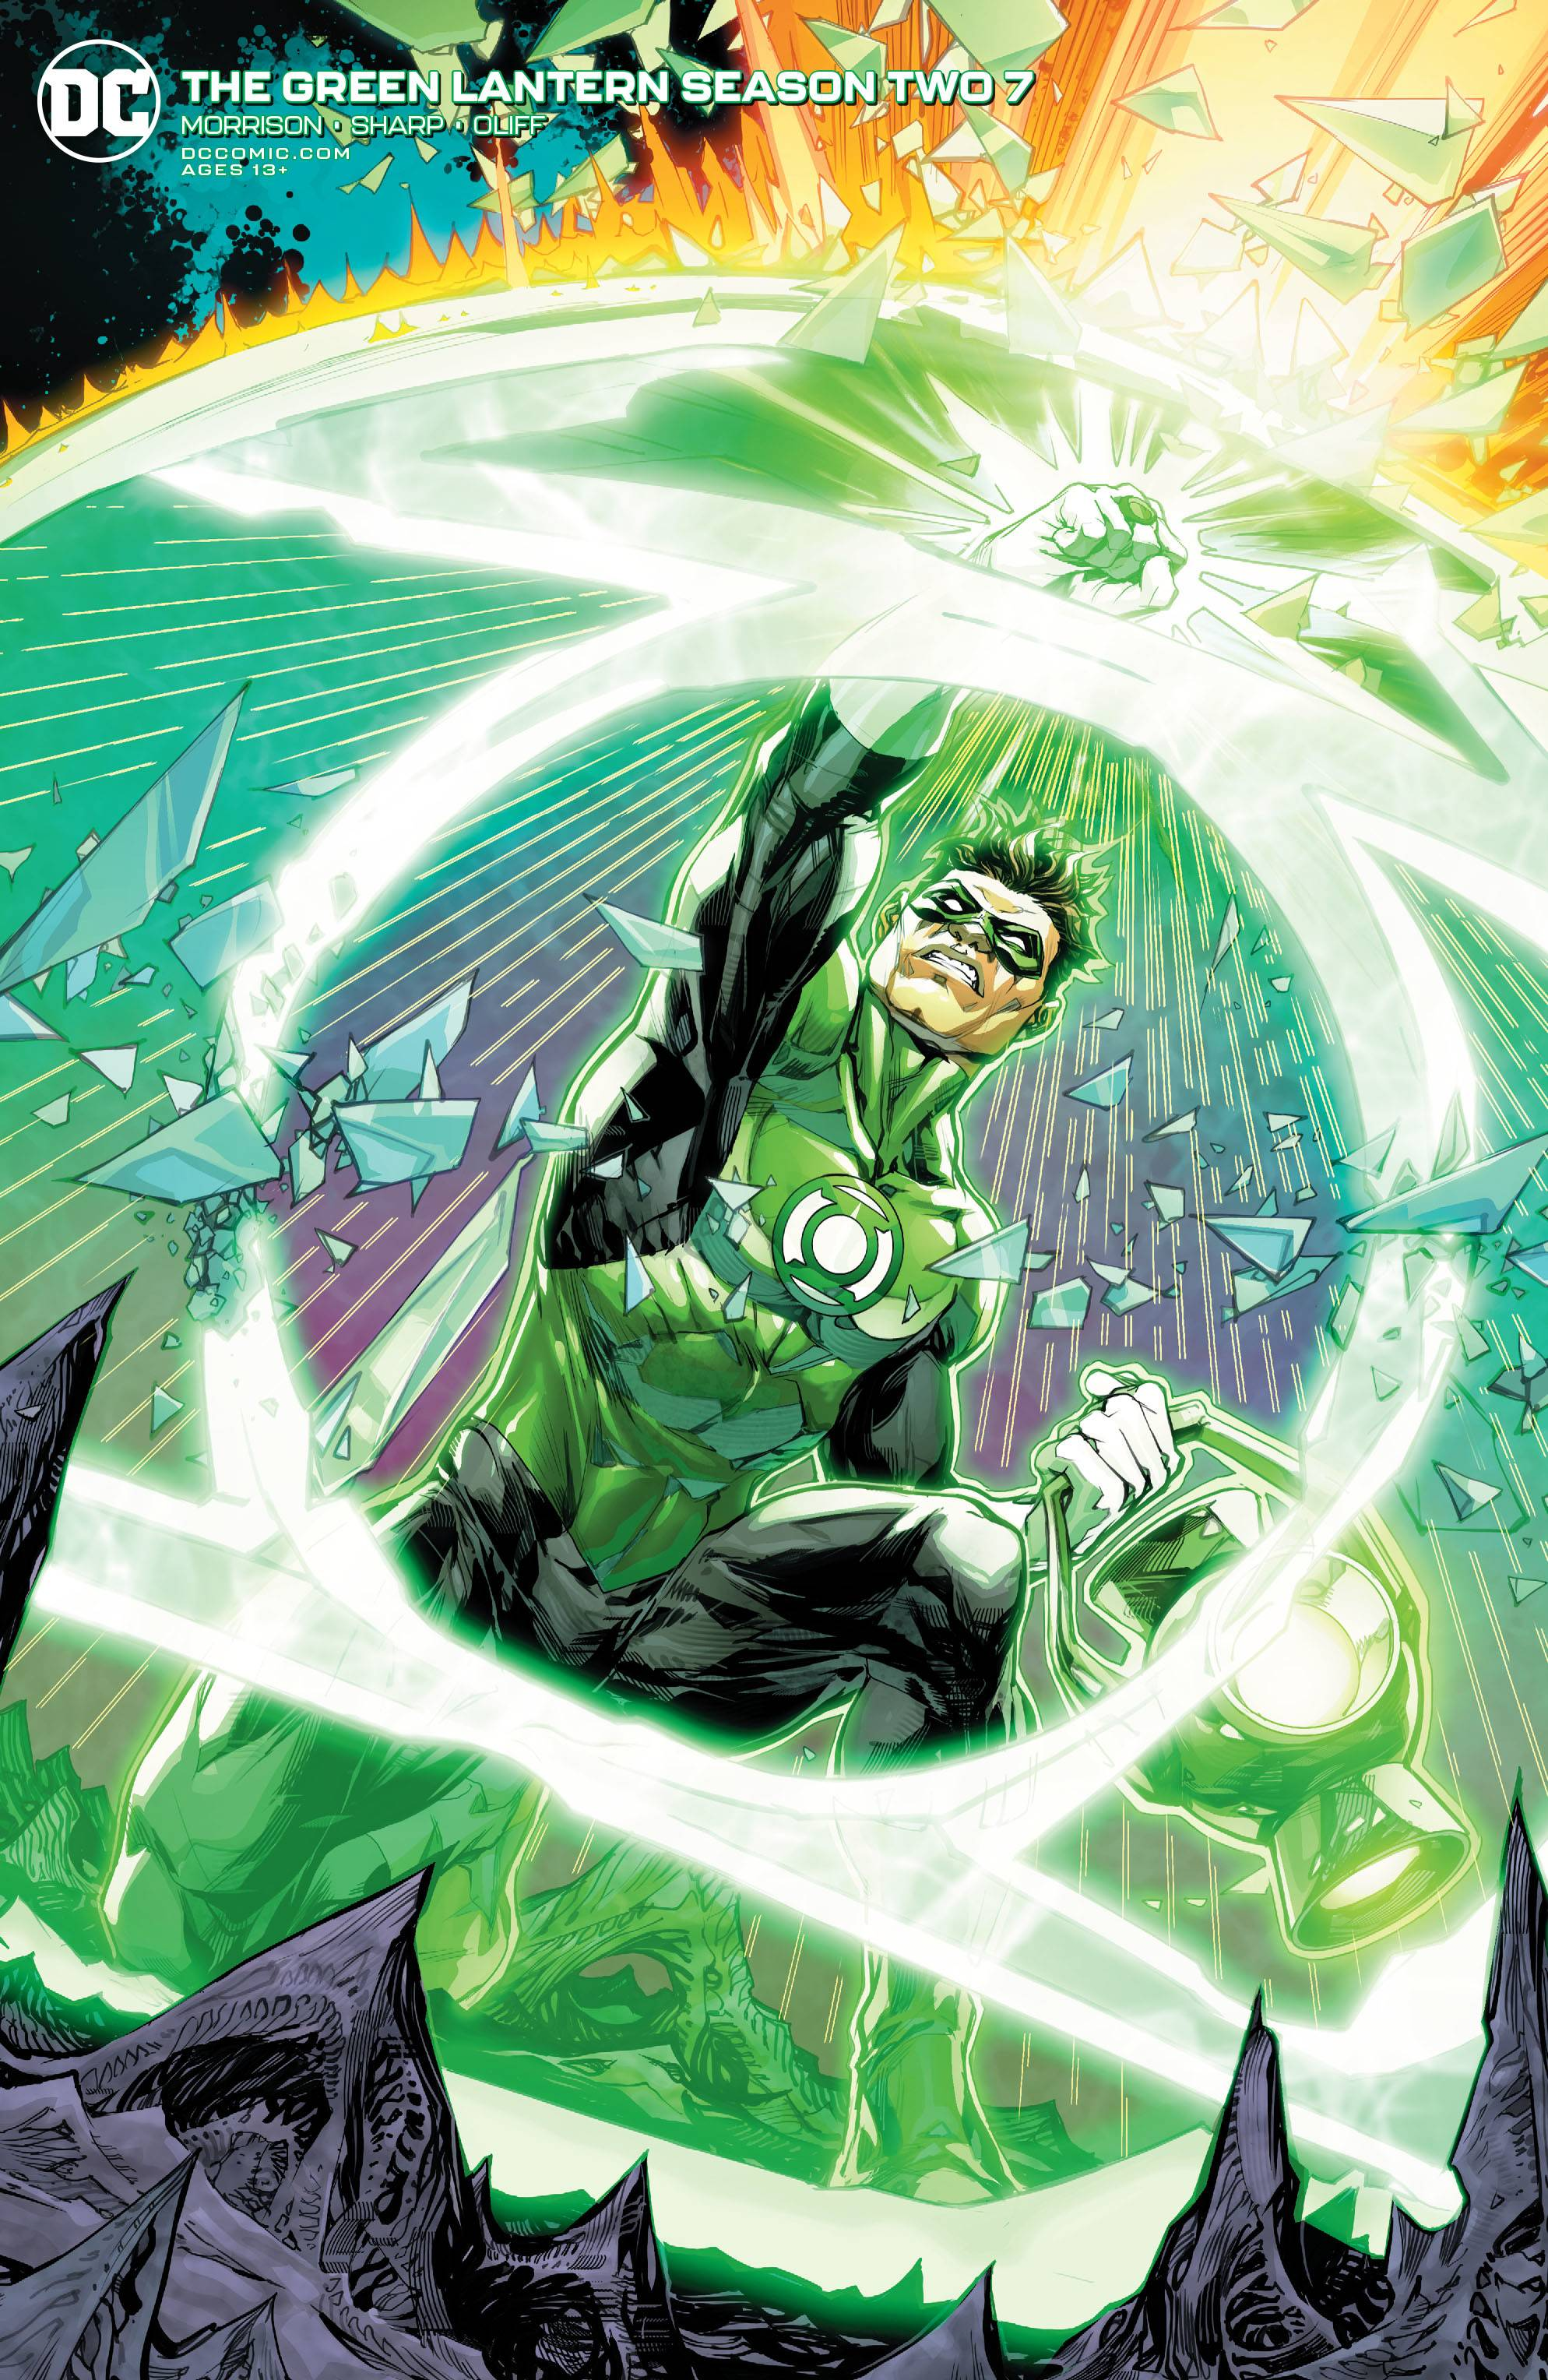 GREEN LANTERN SEASON 2 #7 (OF 12) HOWARD PORTER VAR ED